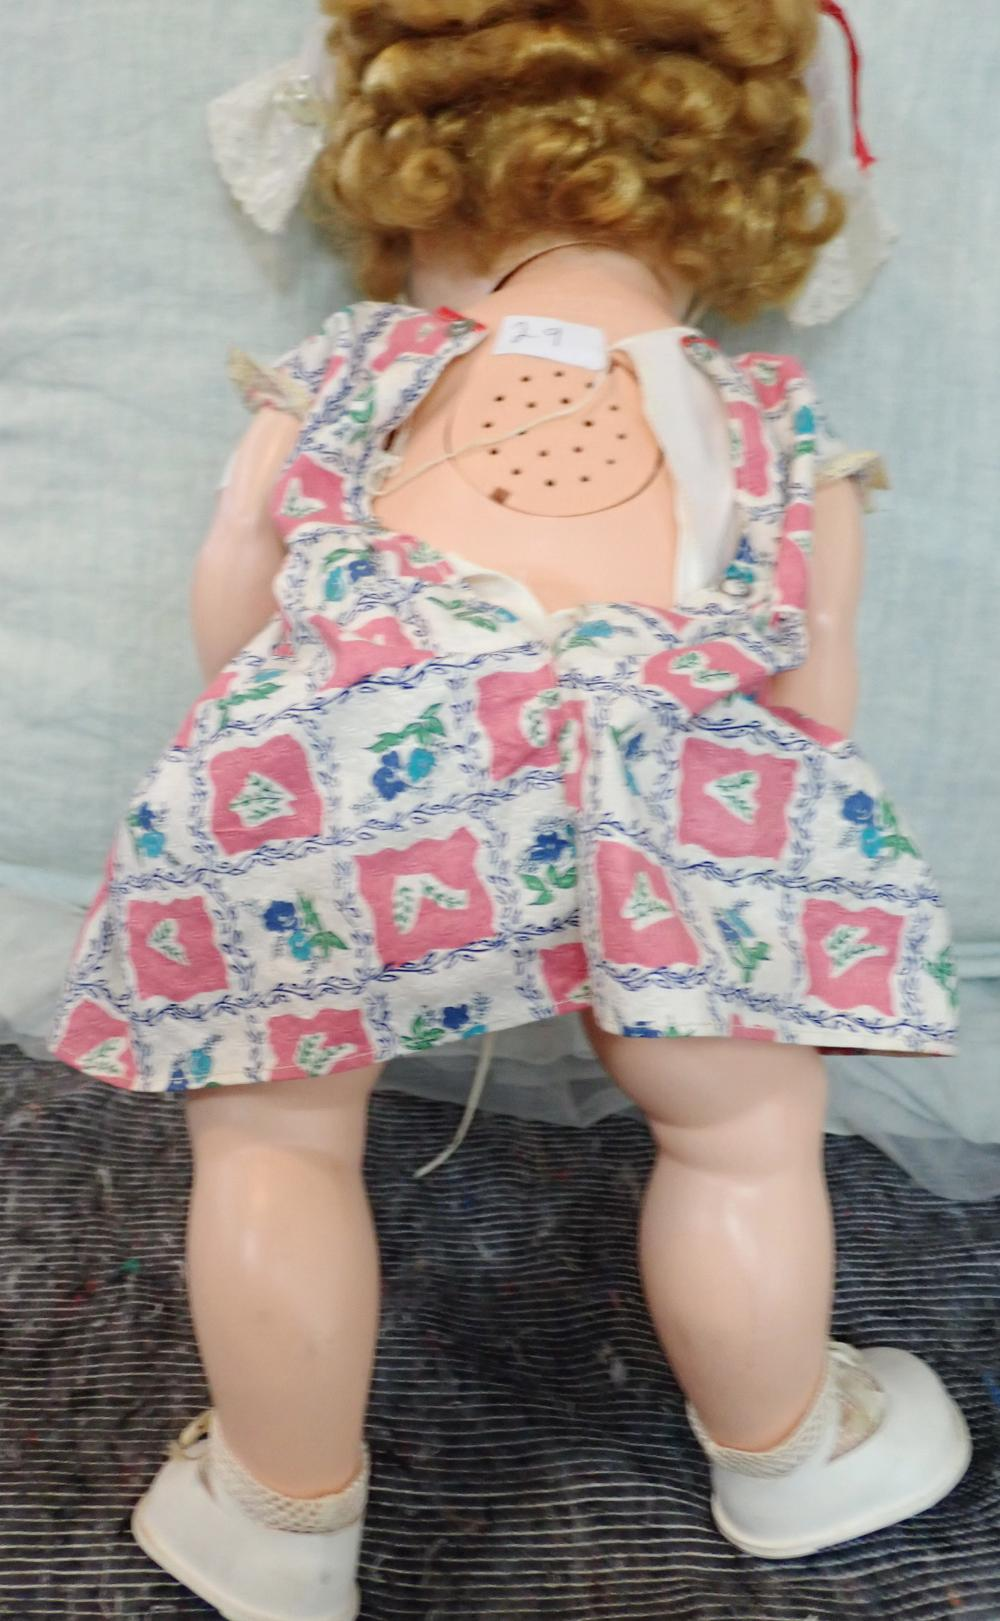 """VINTAGE 20"""" HIGH PEDIGREE DOLL PAINTED, MADE IN ENGLAND FEATURES OPEN AND CLOSE BLUE EYES, VOICE BOX A/F, HARD PLASTIC, GOOD ORIGINAL DOLL BY KENNER"""